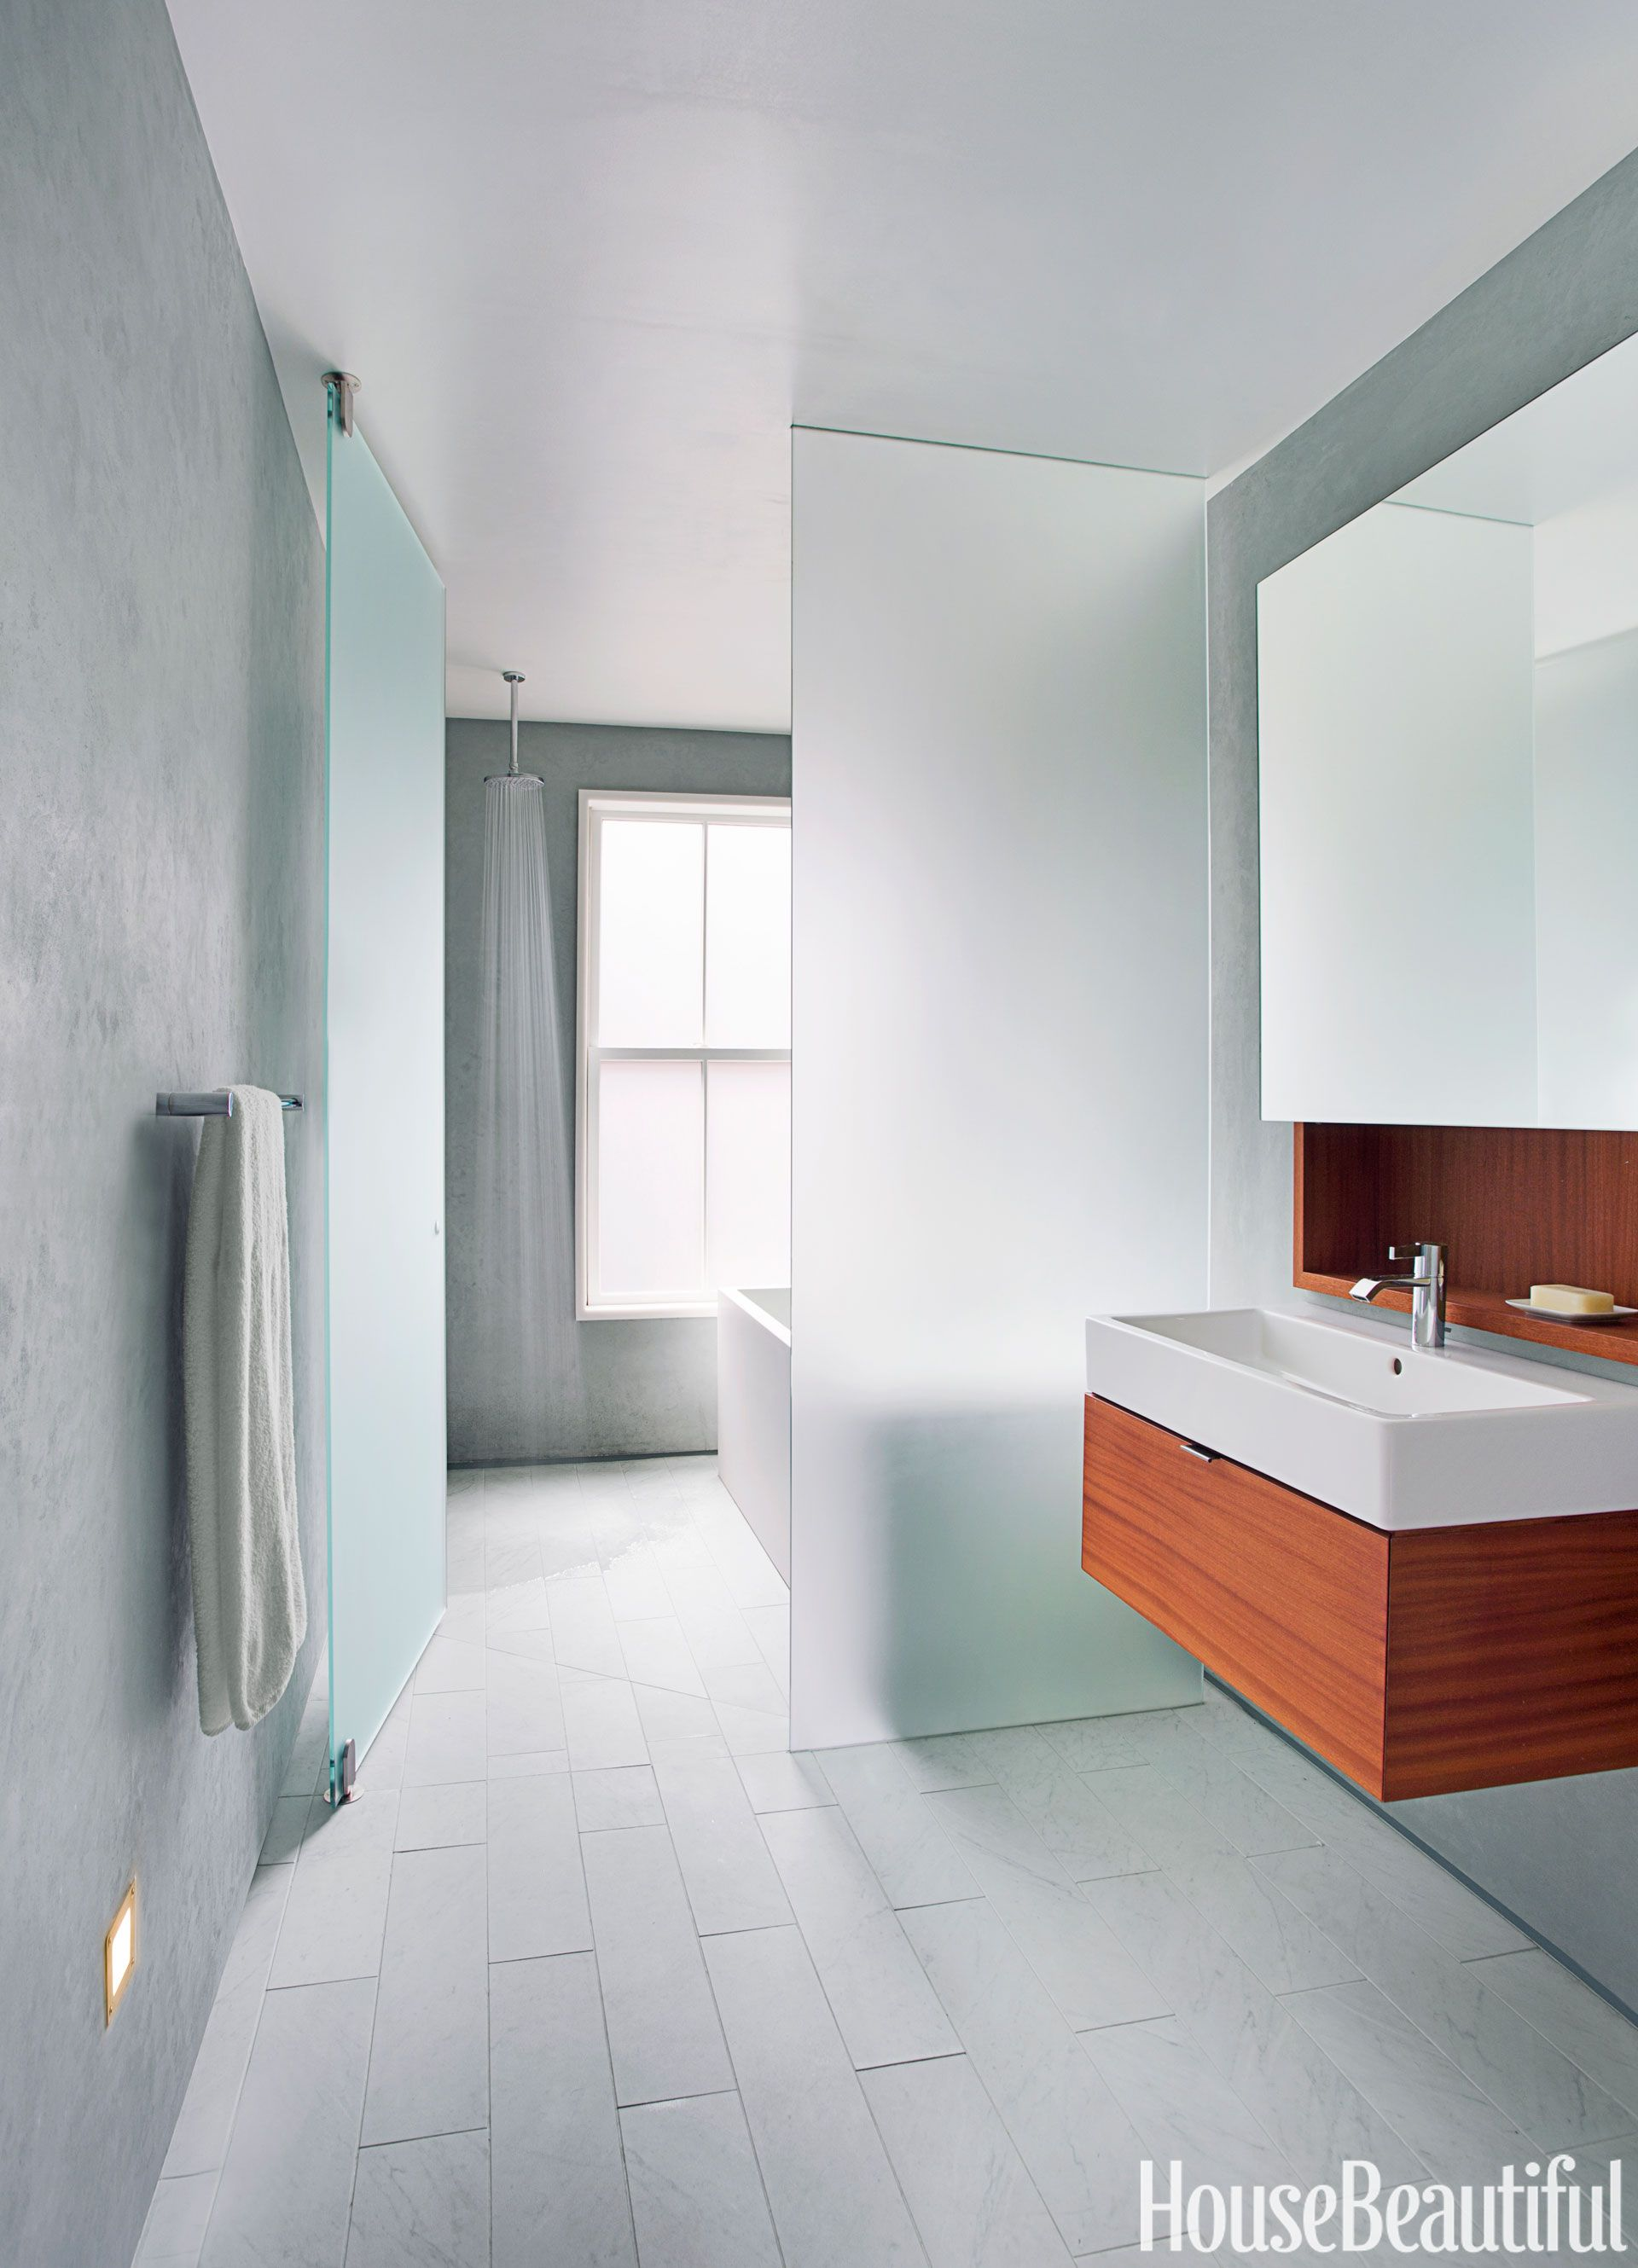 A Modern and Ethereal Bathroom | Ethereal, House beautiful and Glass ...